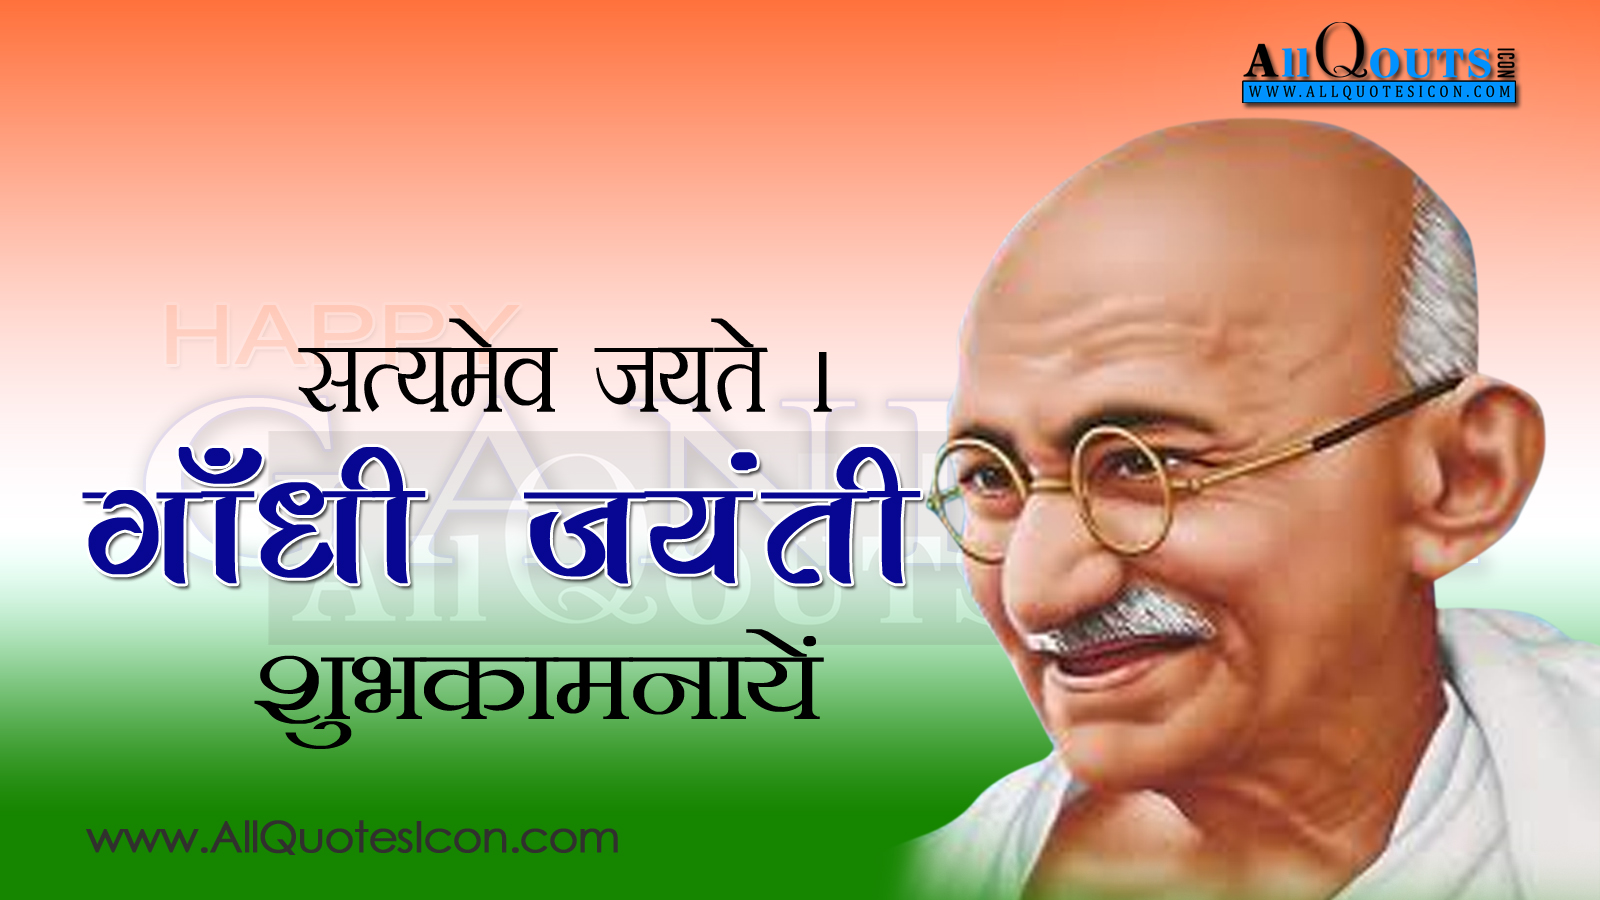 gandhi jayanthi wishes in hindi hd wallpapers best mahatma